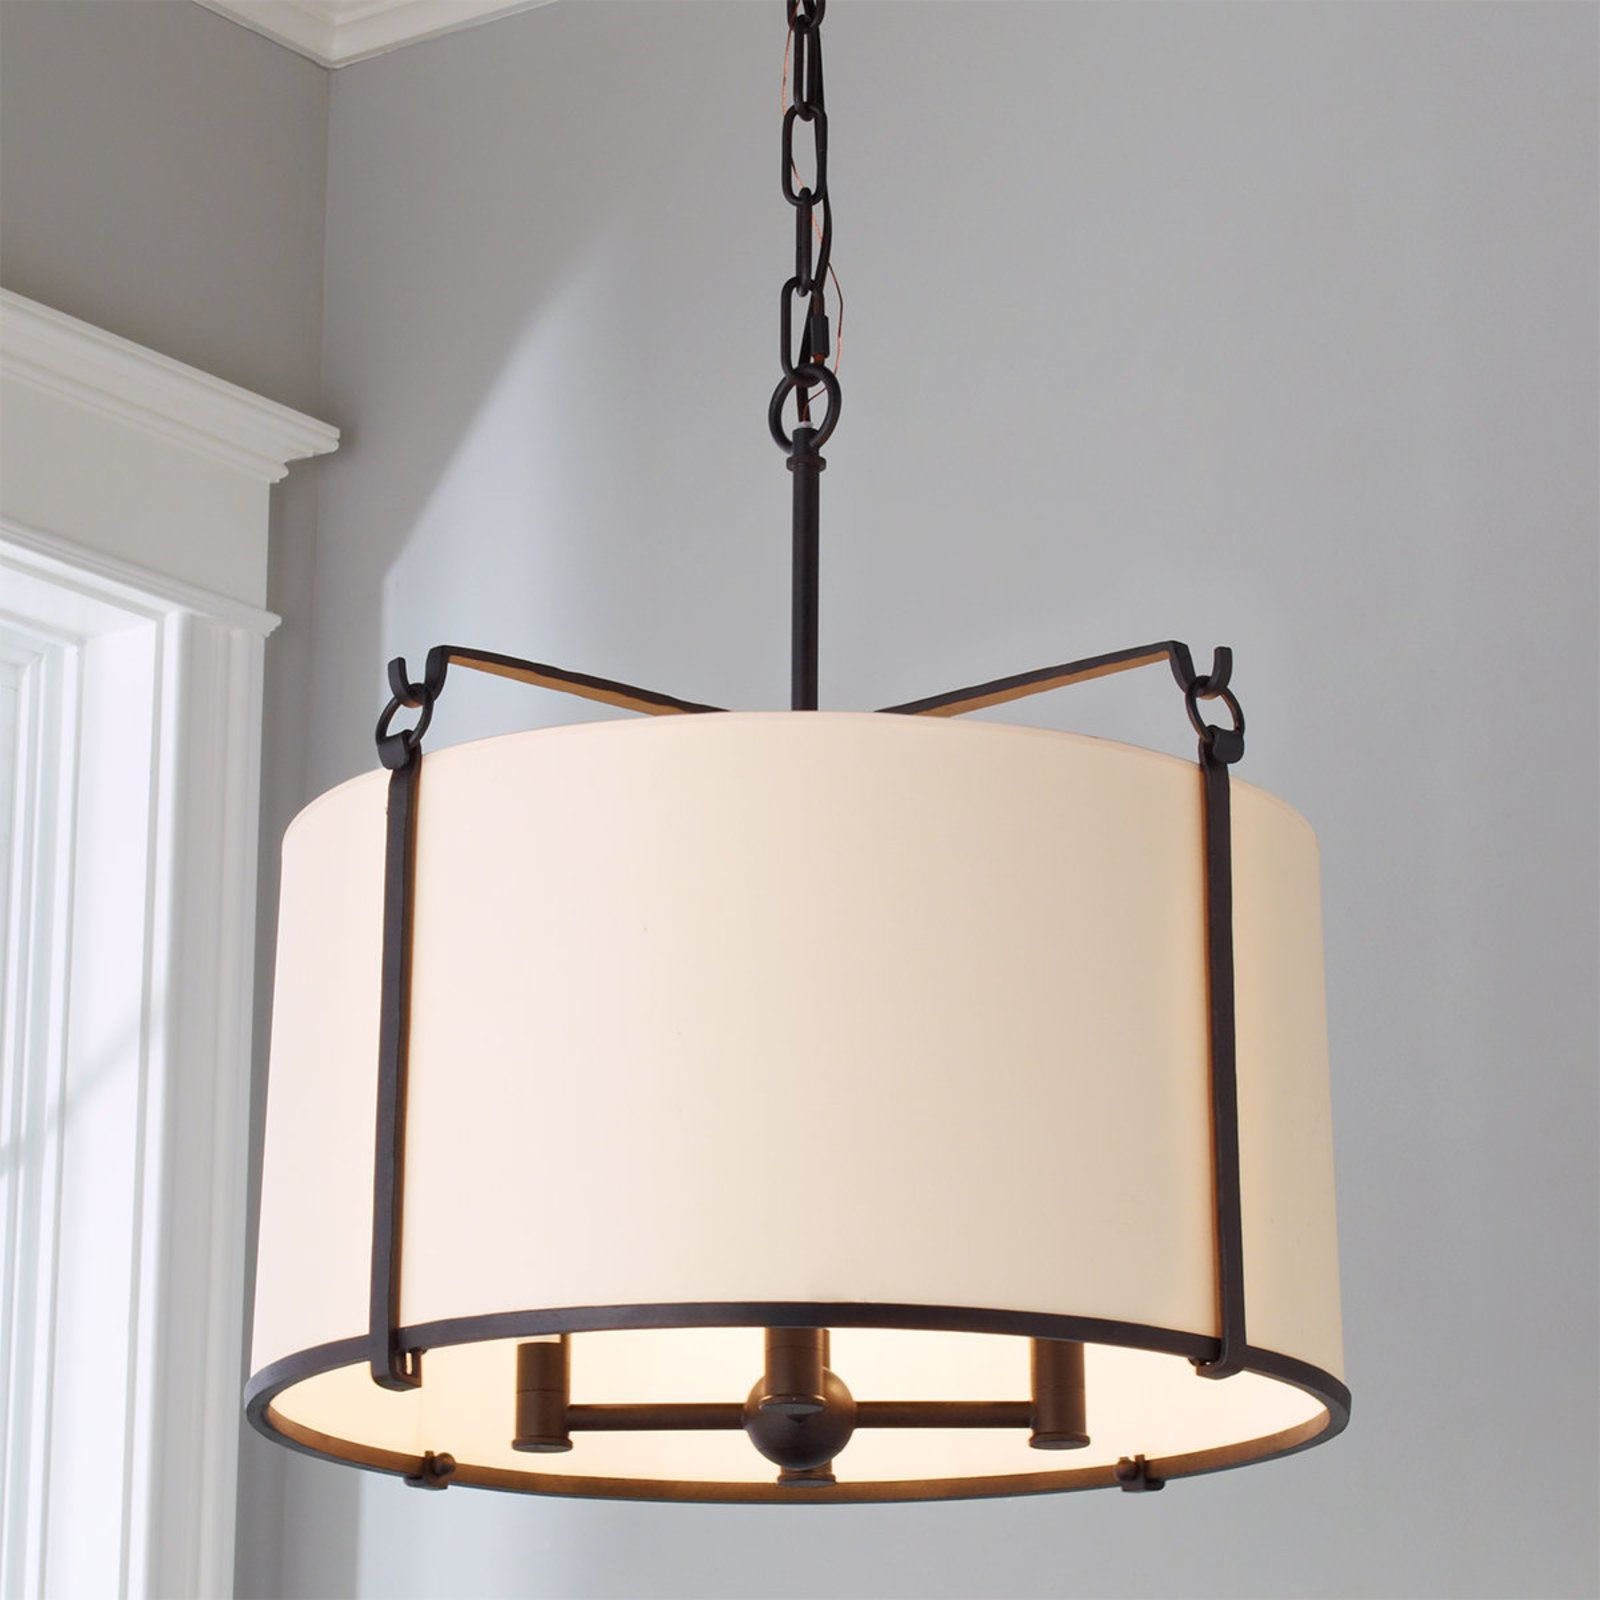 Loft Shade Chandelier Drum Shade Chandelier Chandelier Shades